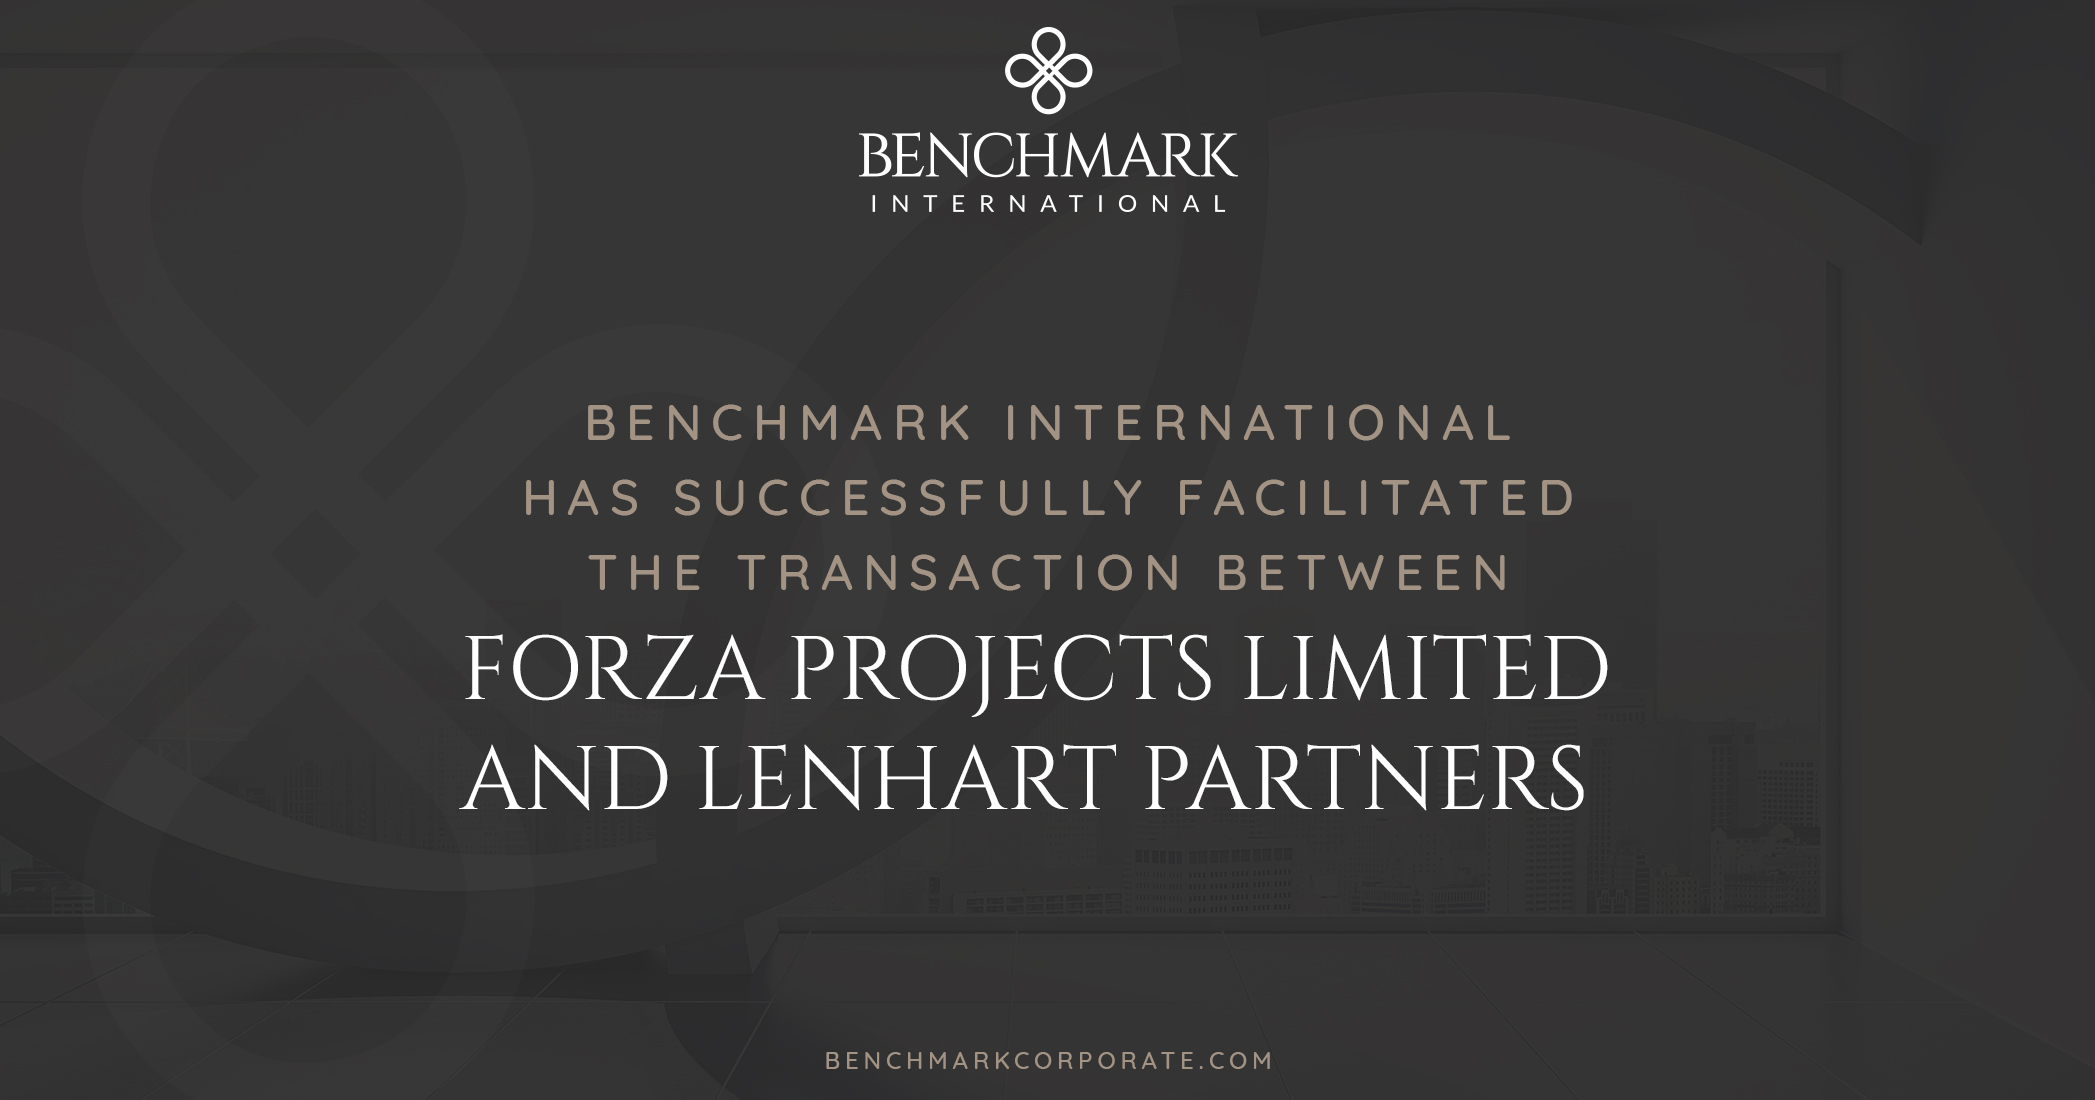 Benchmark International Advises on the Transaction Between Forza Projects Limited and Lenhart Partners